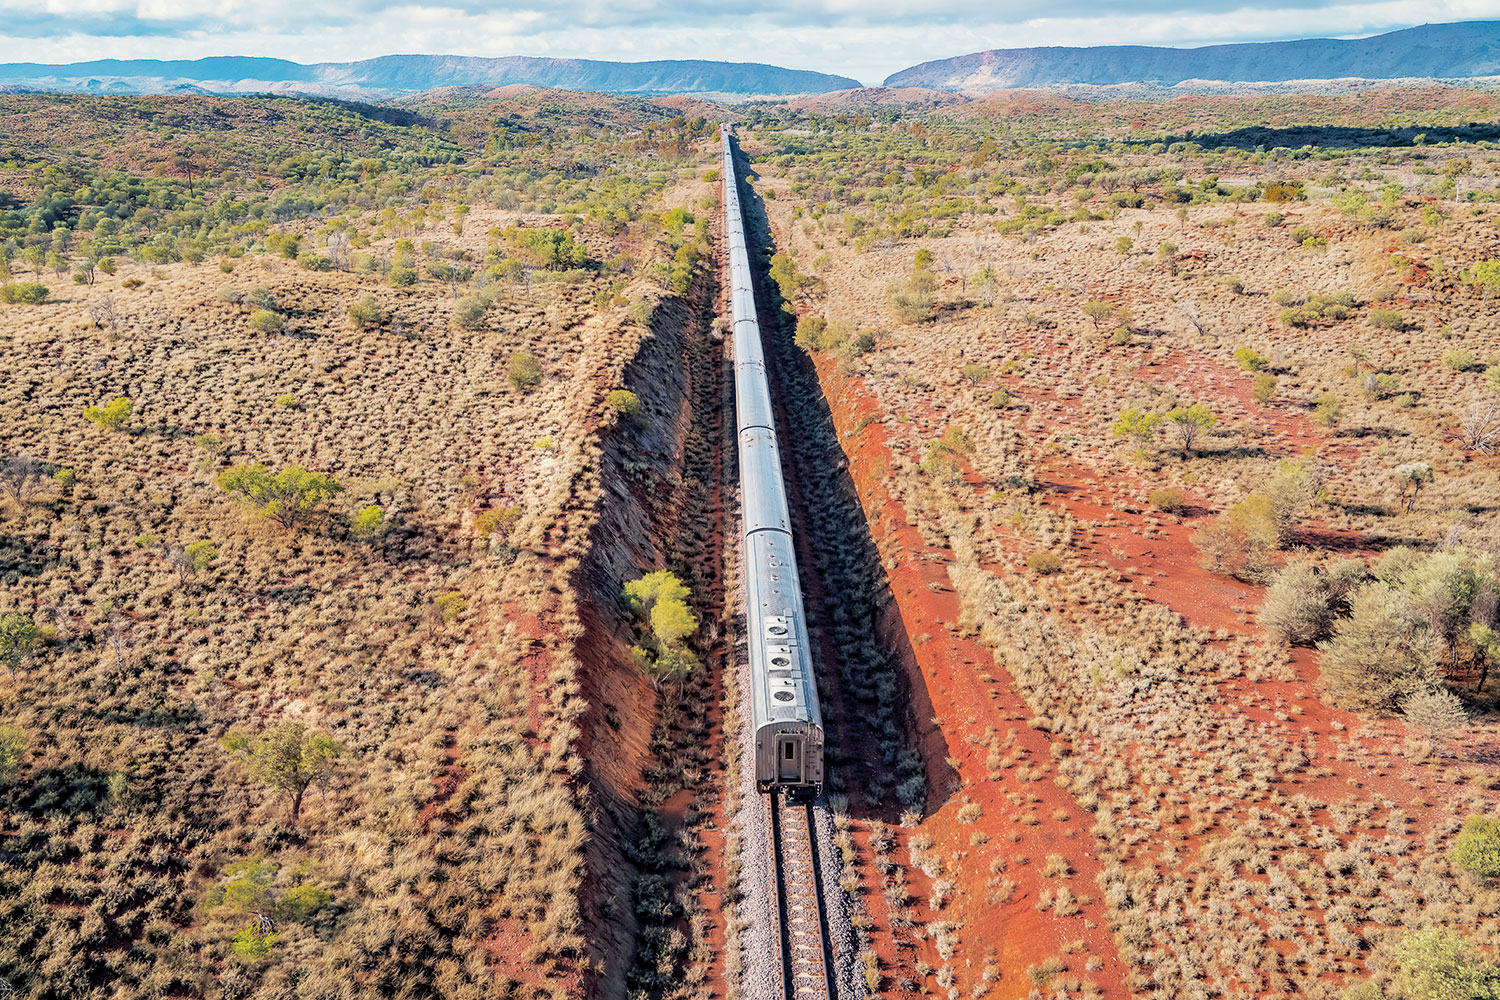 The Ghan as it heads south towards Alice Springs